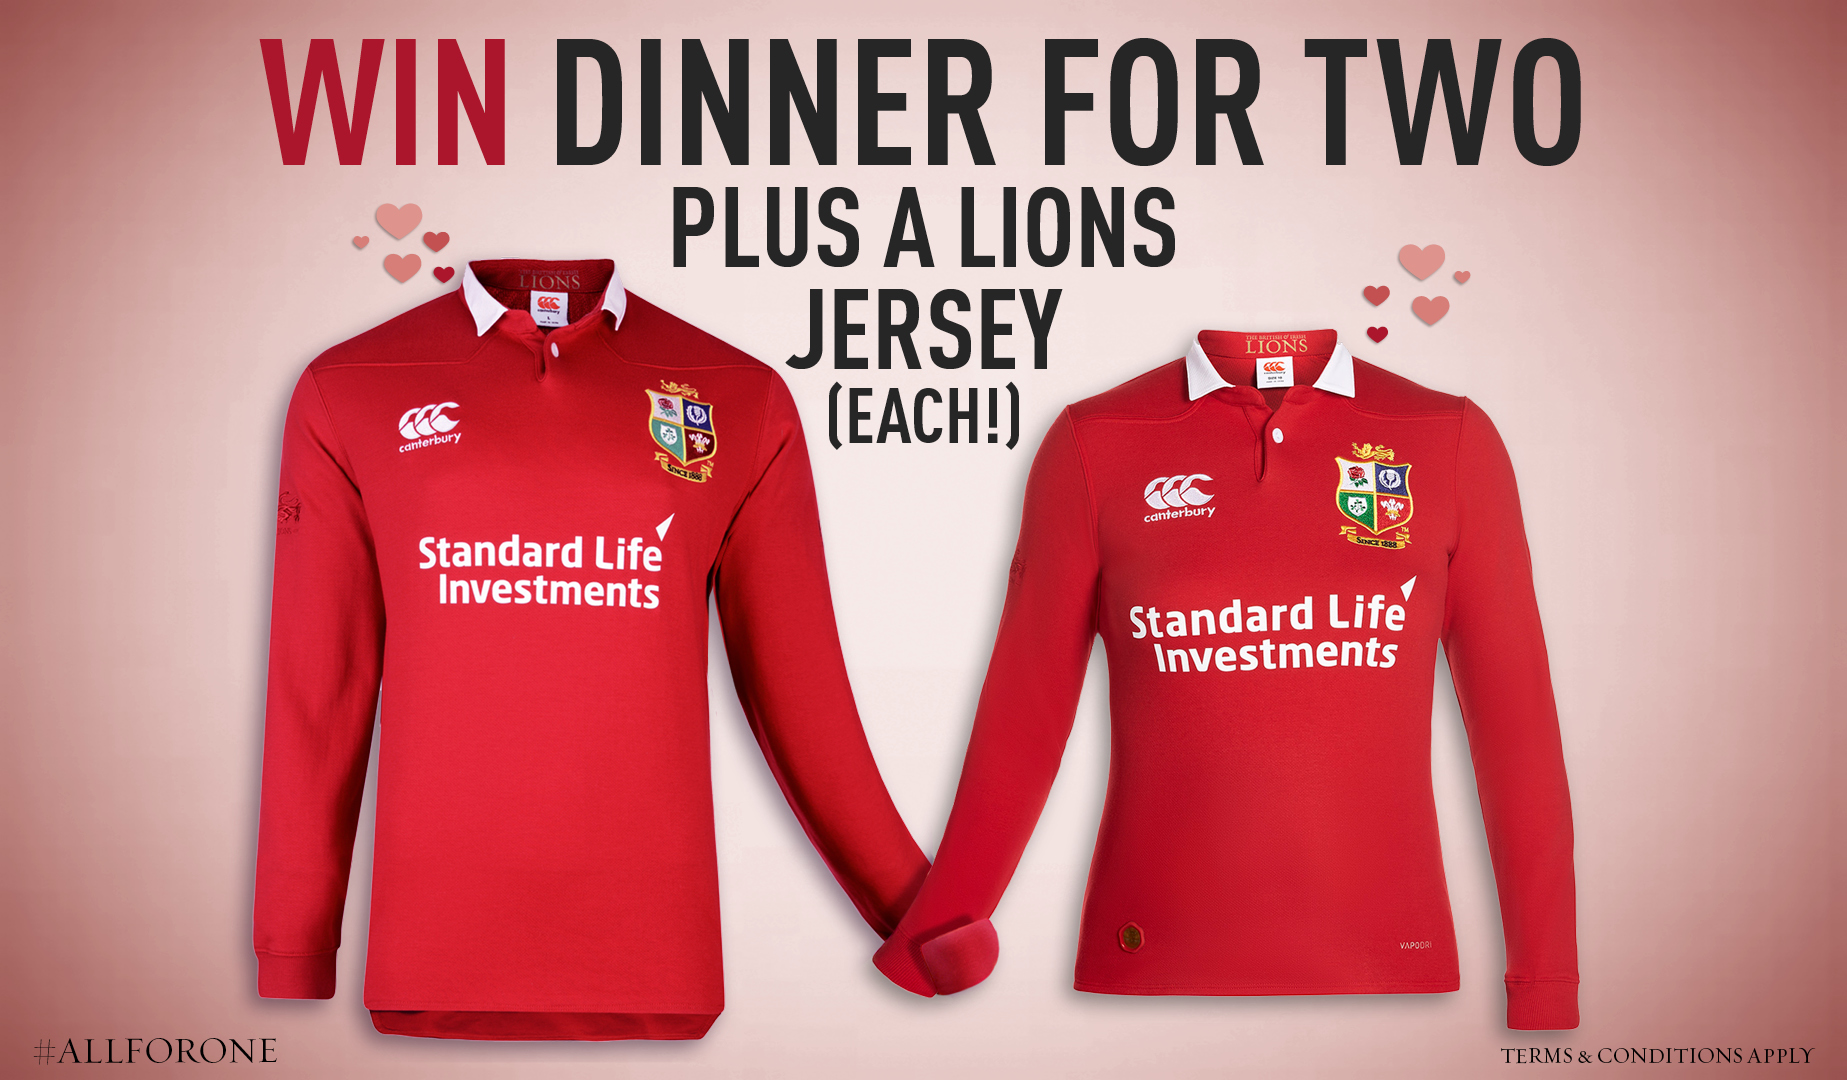 Win a dinner for two and a pair of Lions jerseys on Valentine's Day